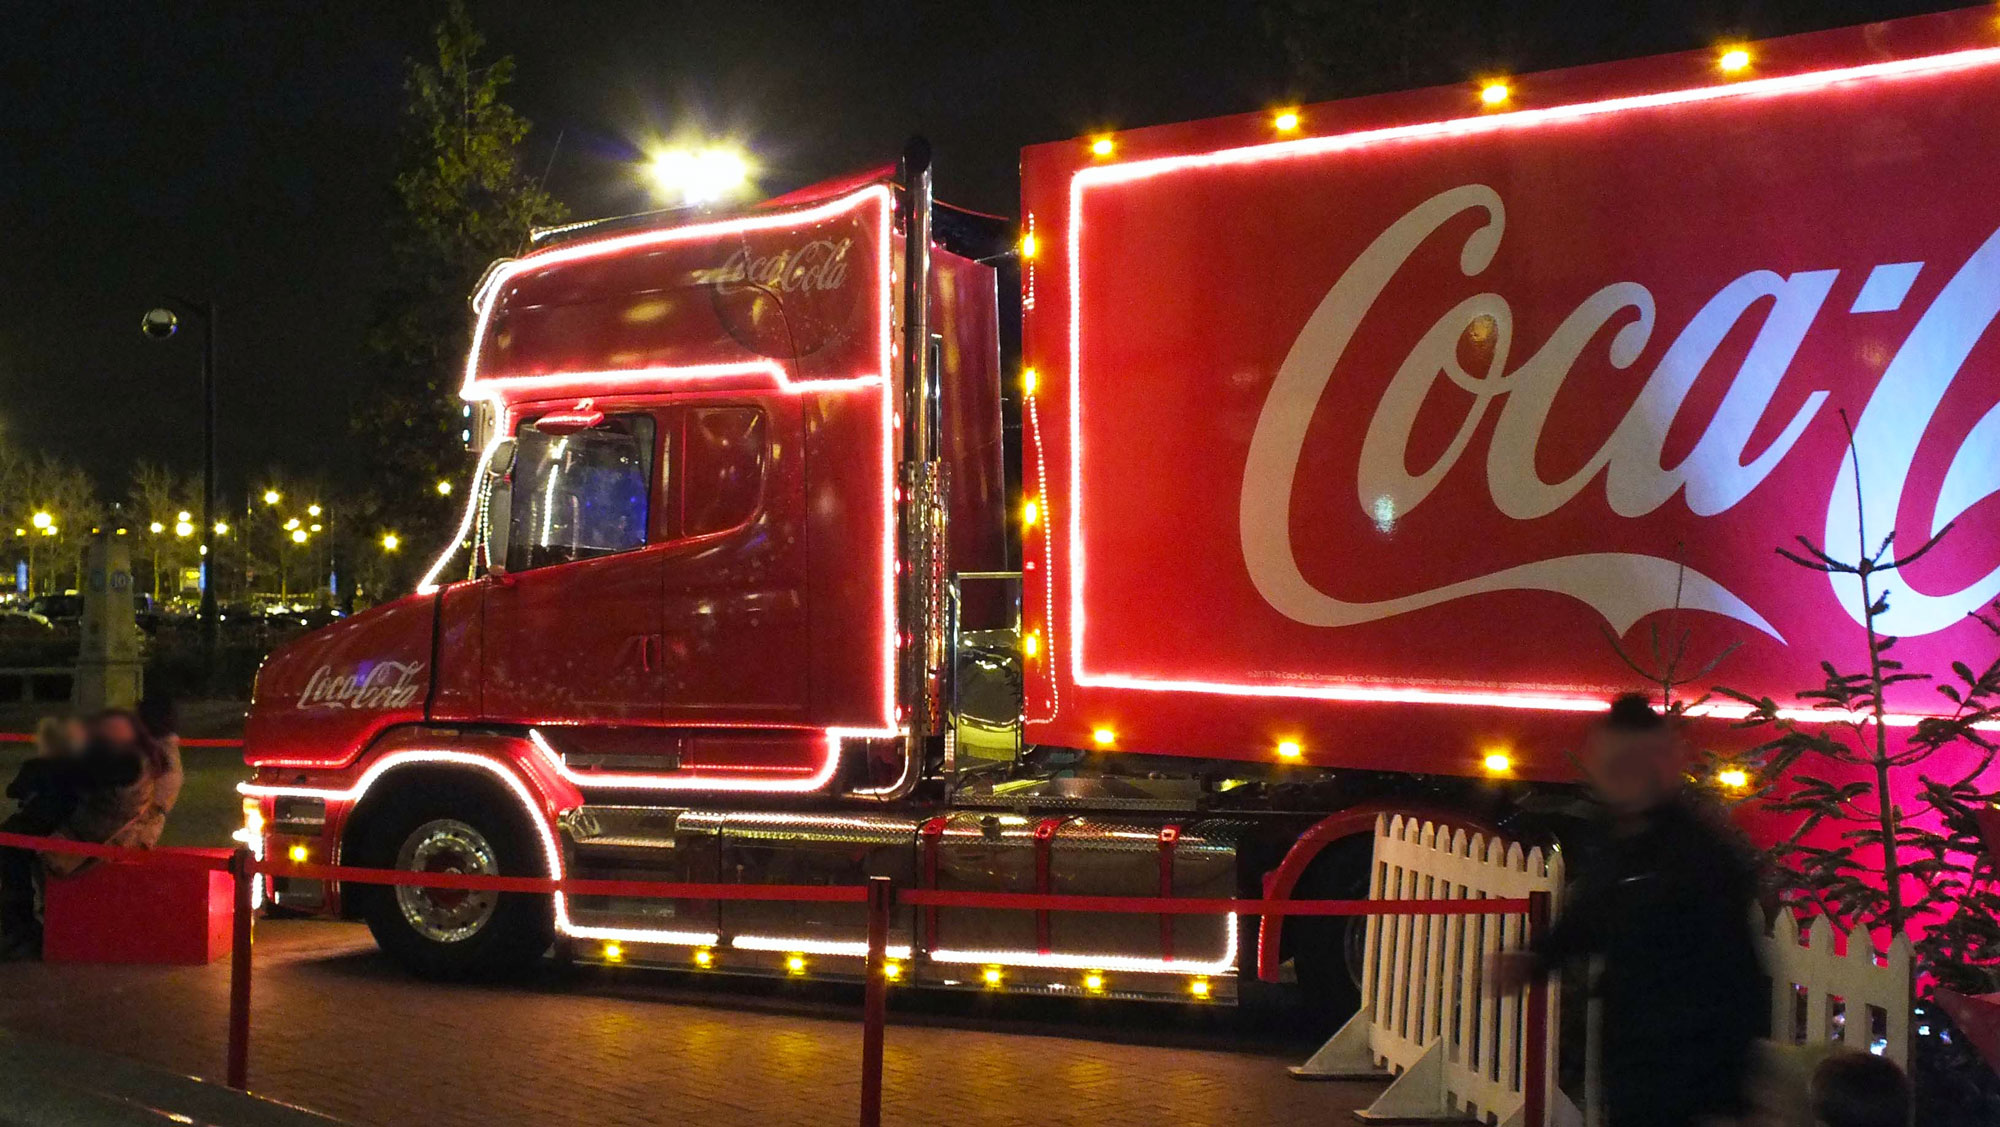 politician wants to ban coca cola from handing out free drinks at christmas munchies - Coca Cola Christmas Commercial